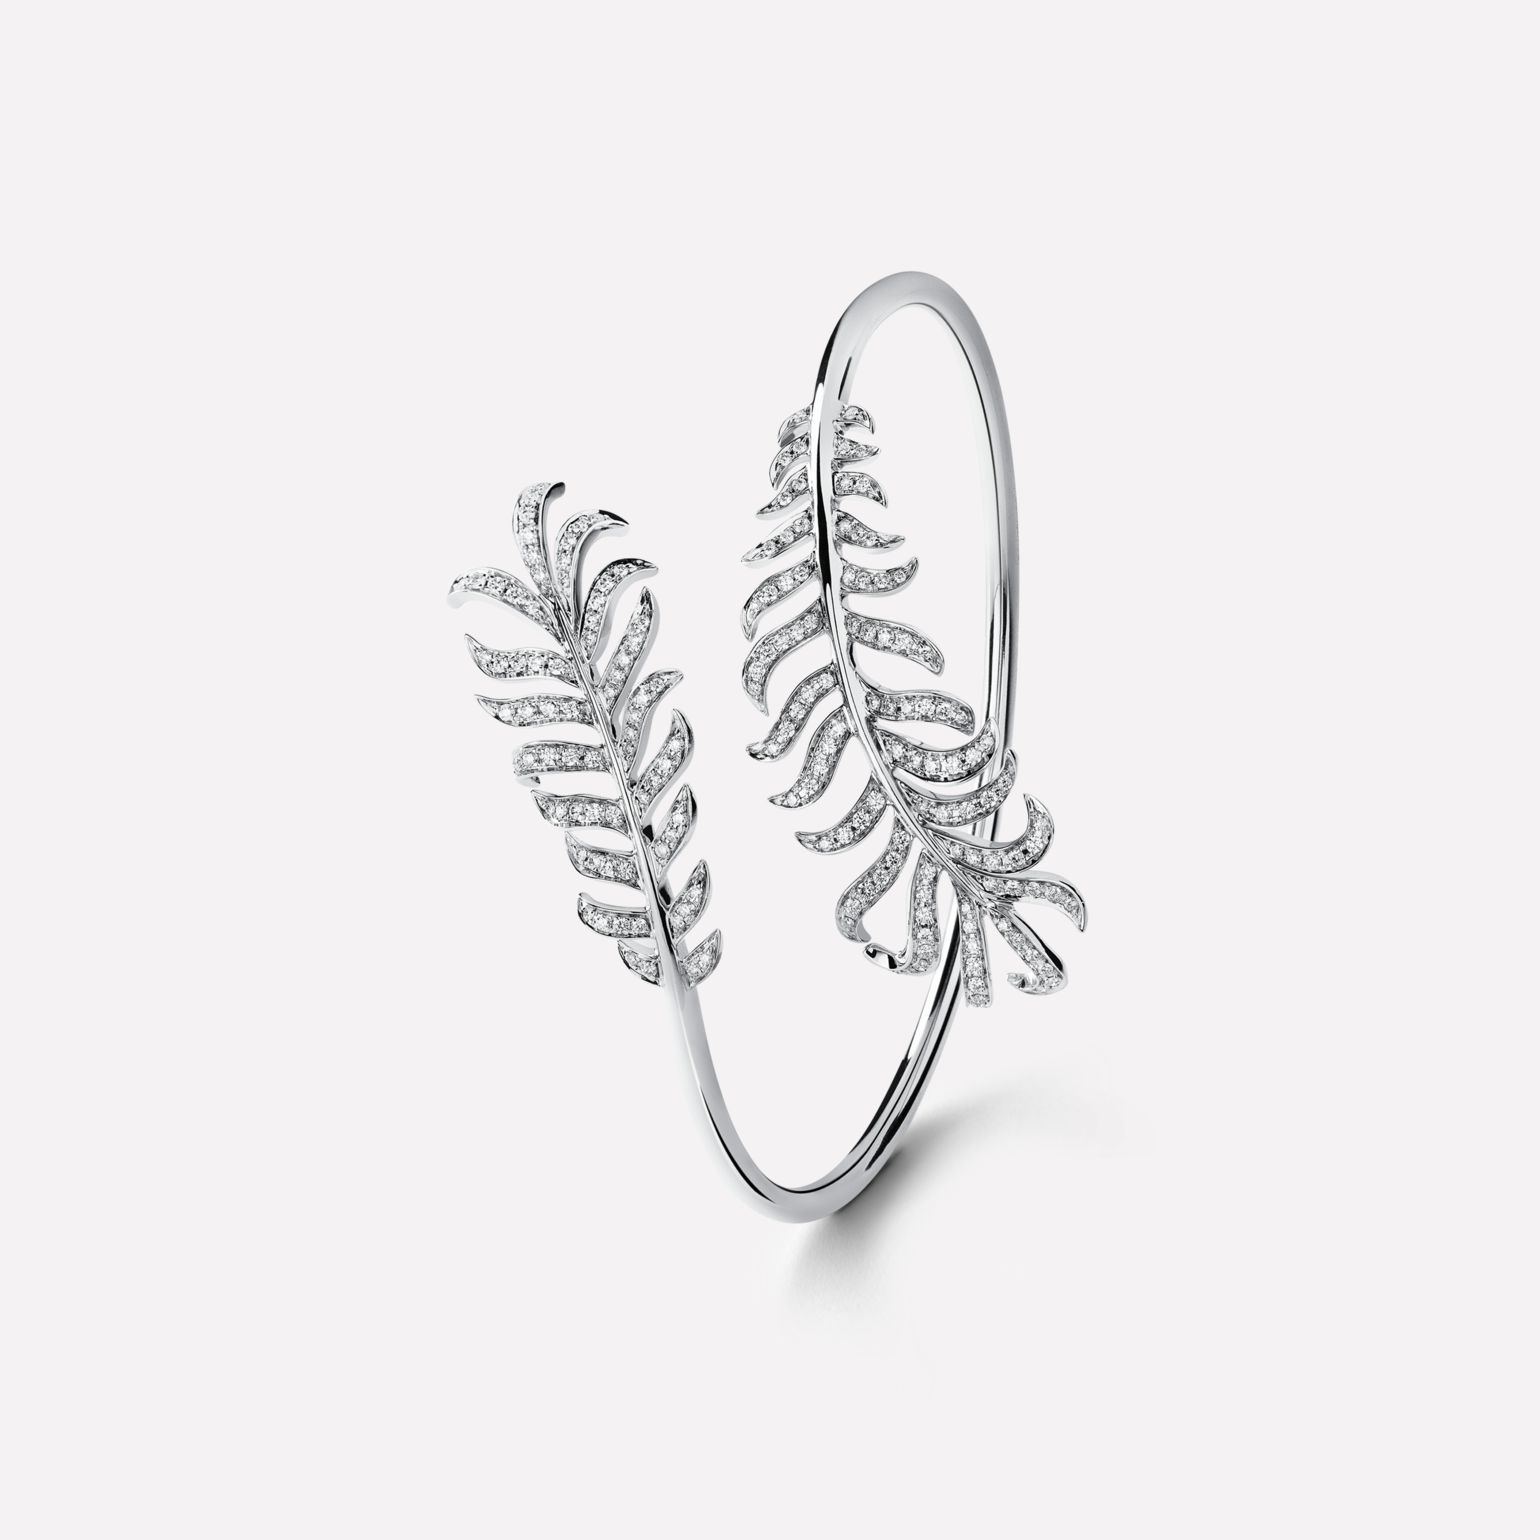 Plume de CHANEL Bracelet Double Plume bracelet in 18K white gold and diamonds